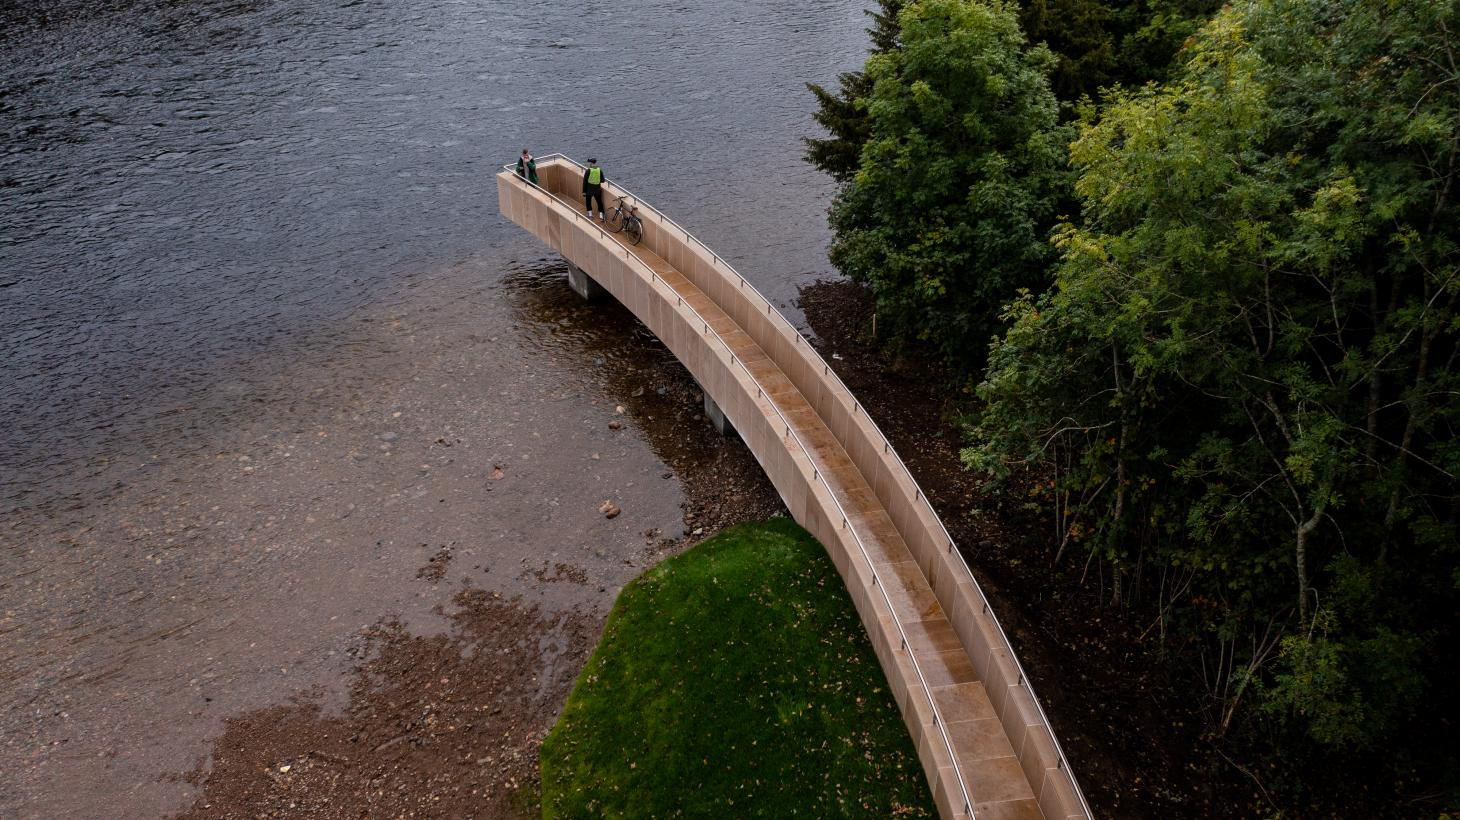 spatial installation in Scotland that mixes art and architecture